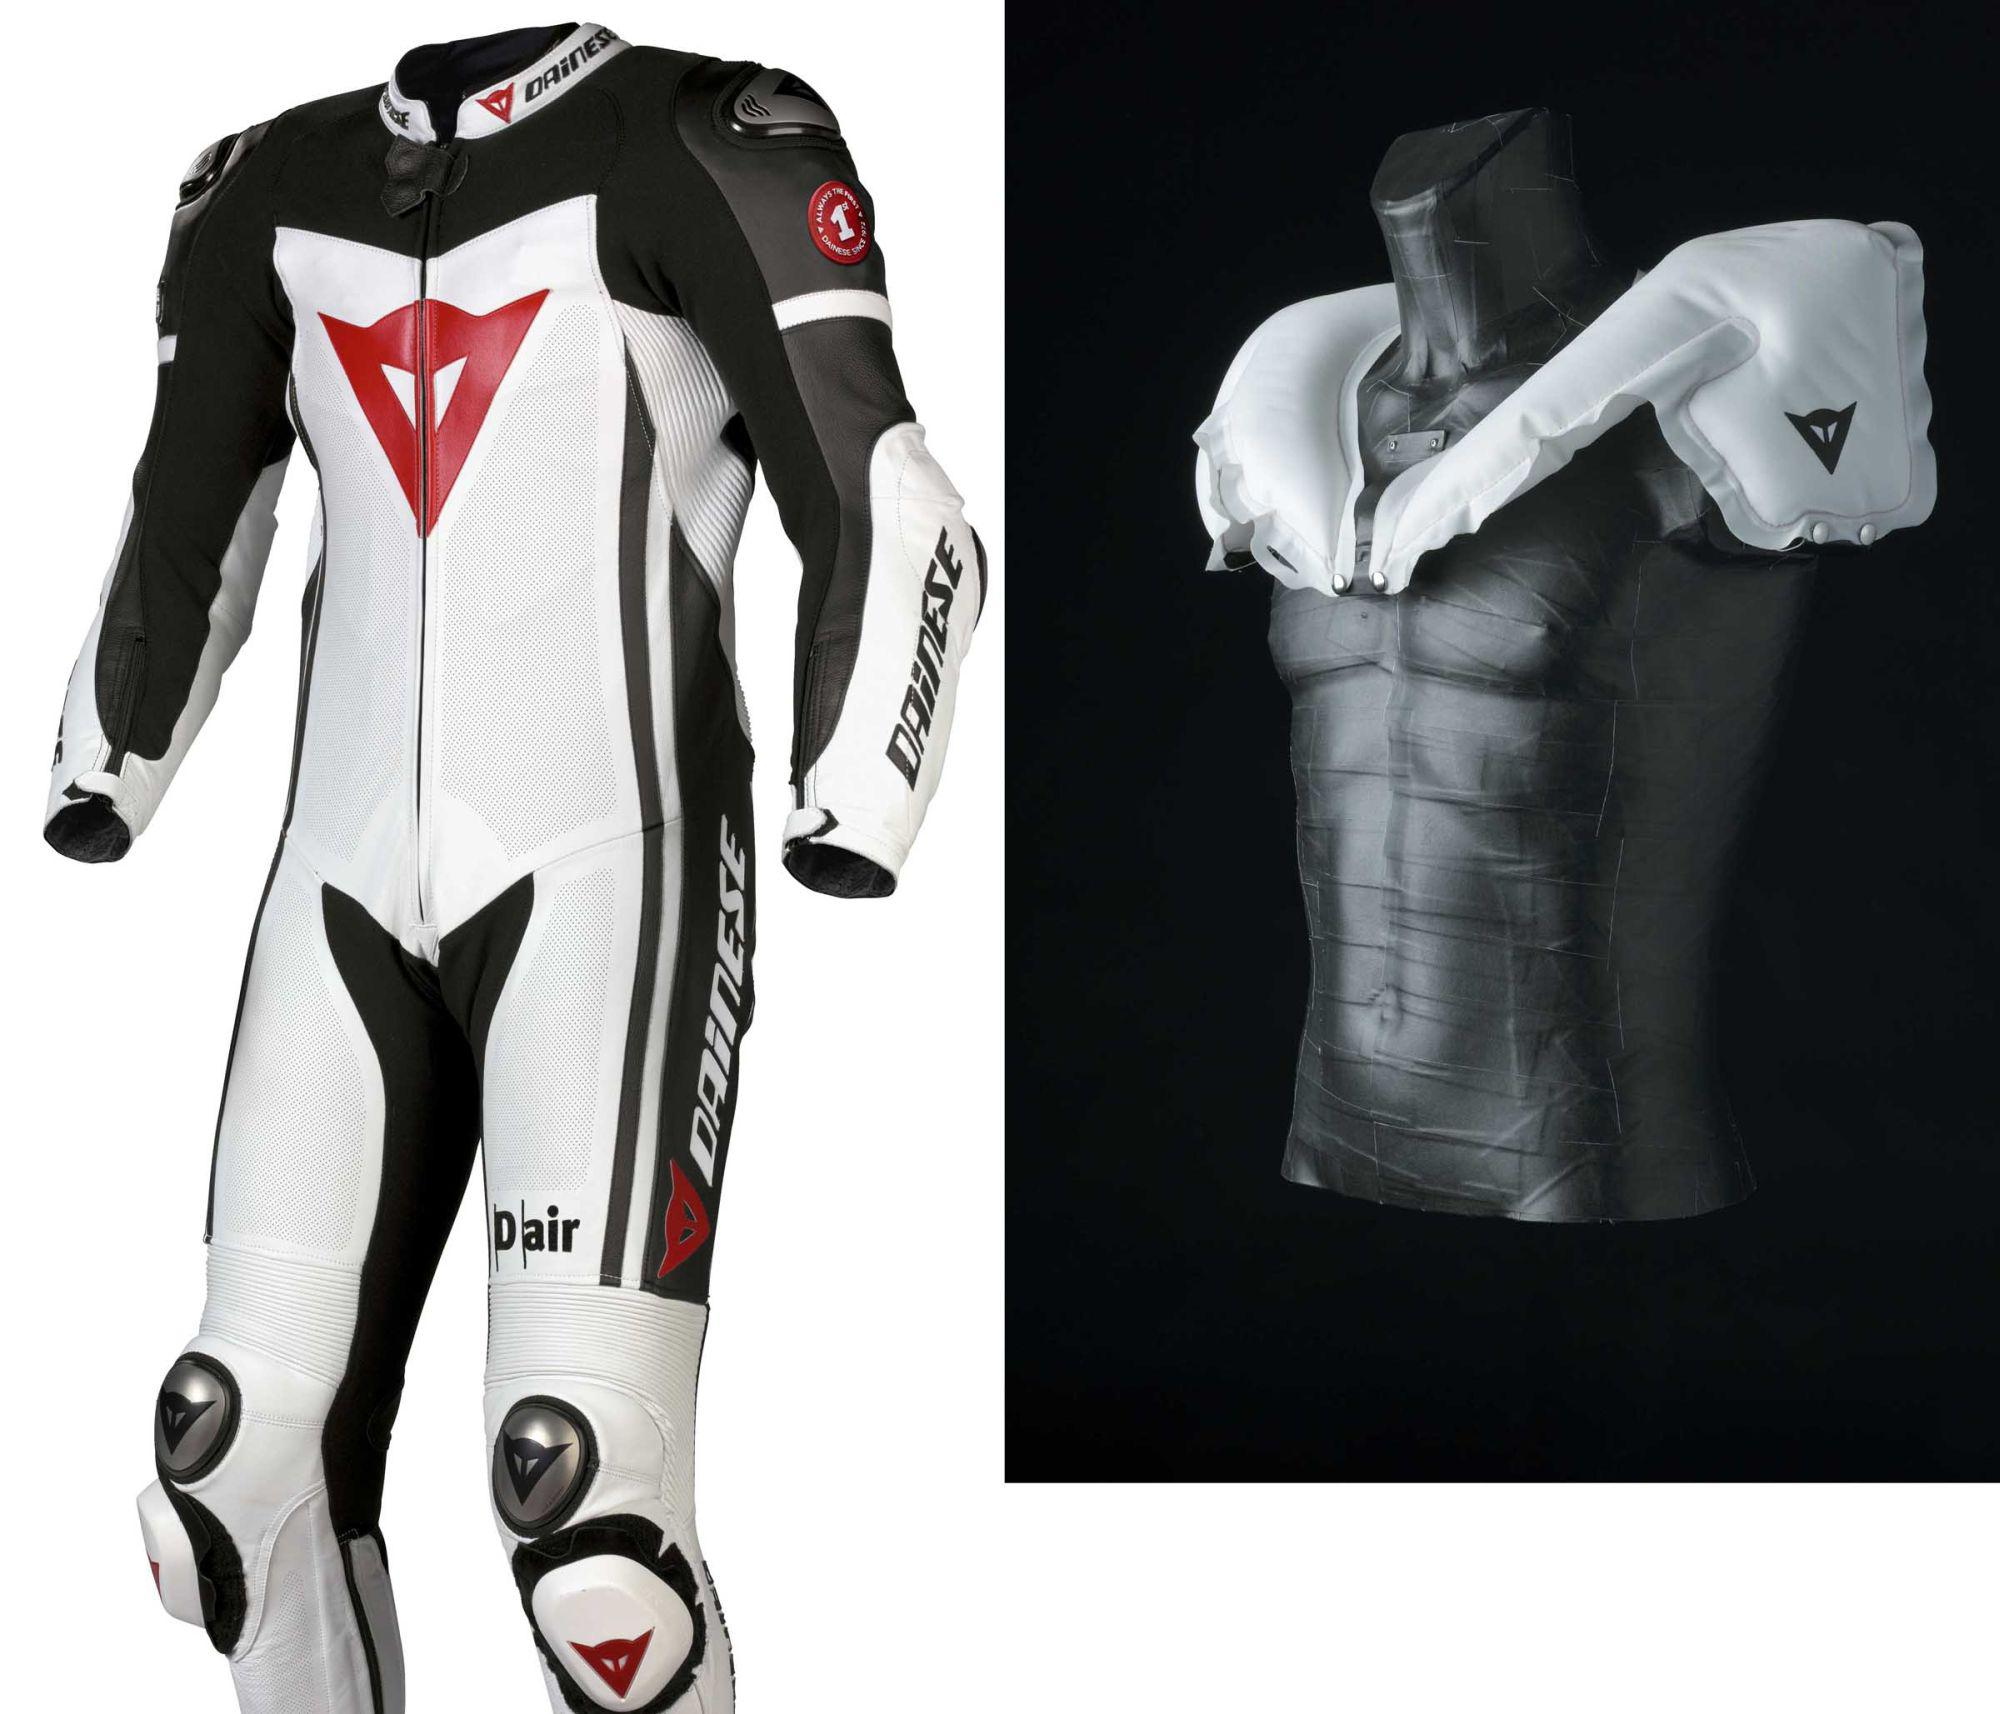 dainese d air airbag system 2015. Black Bedroom Furniture Sets. Home Design Ideas